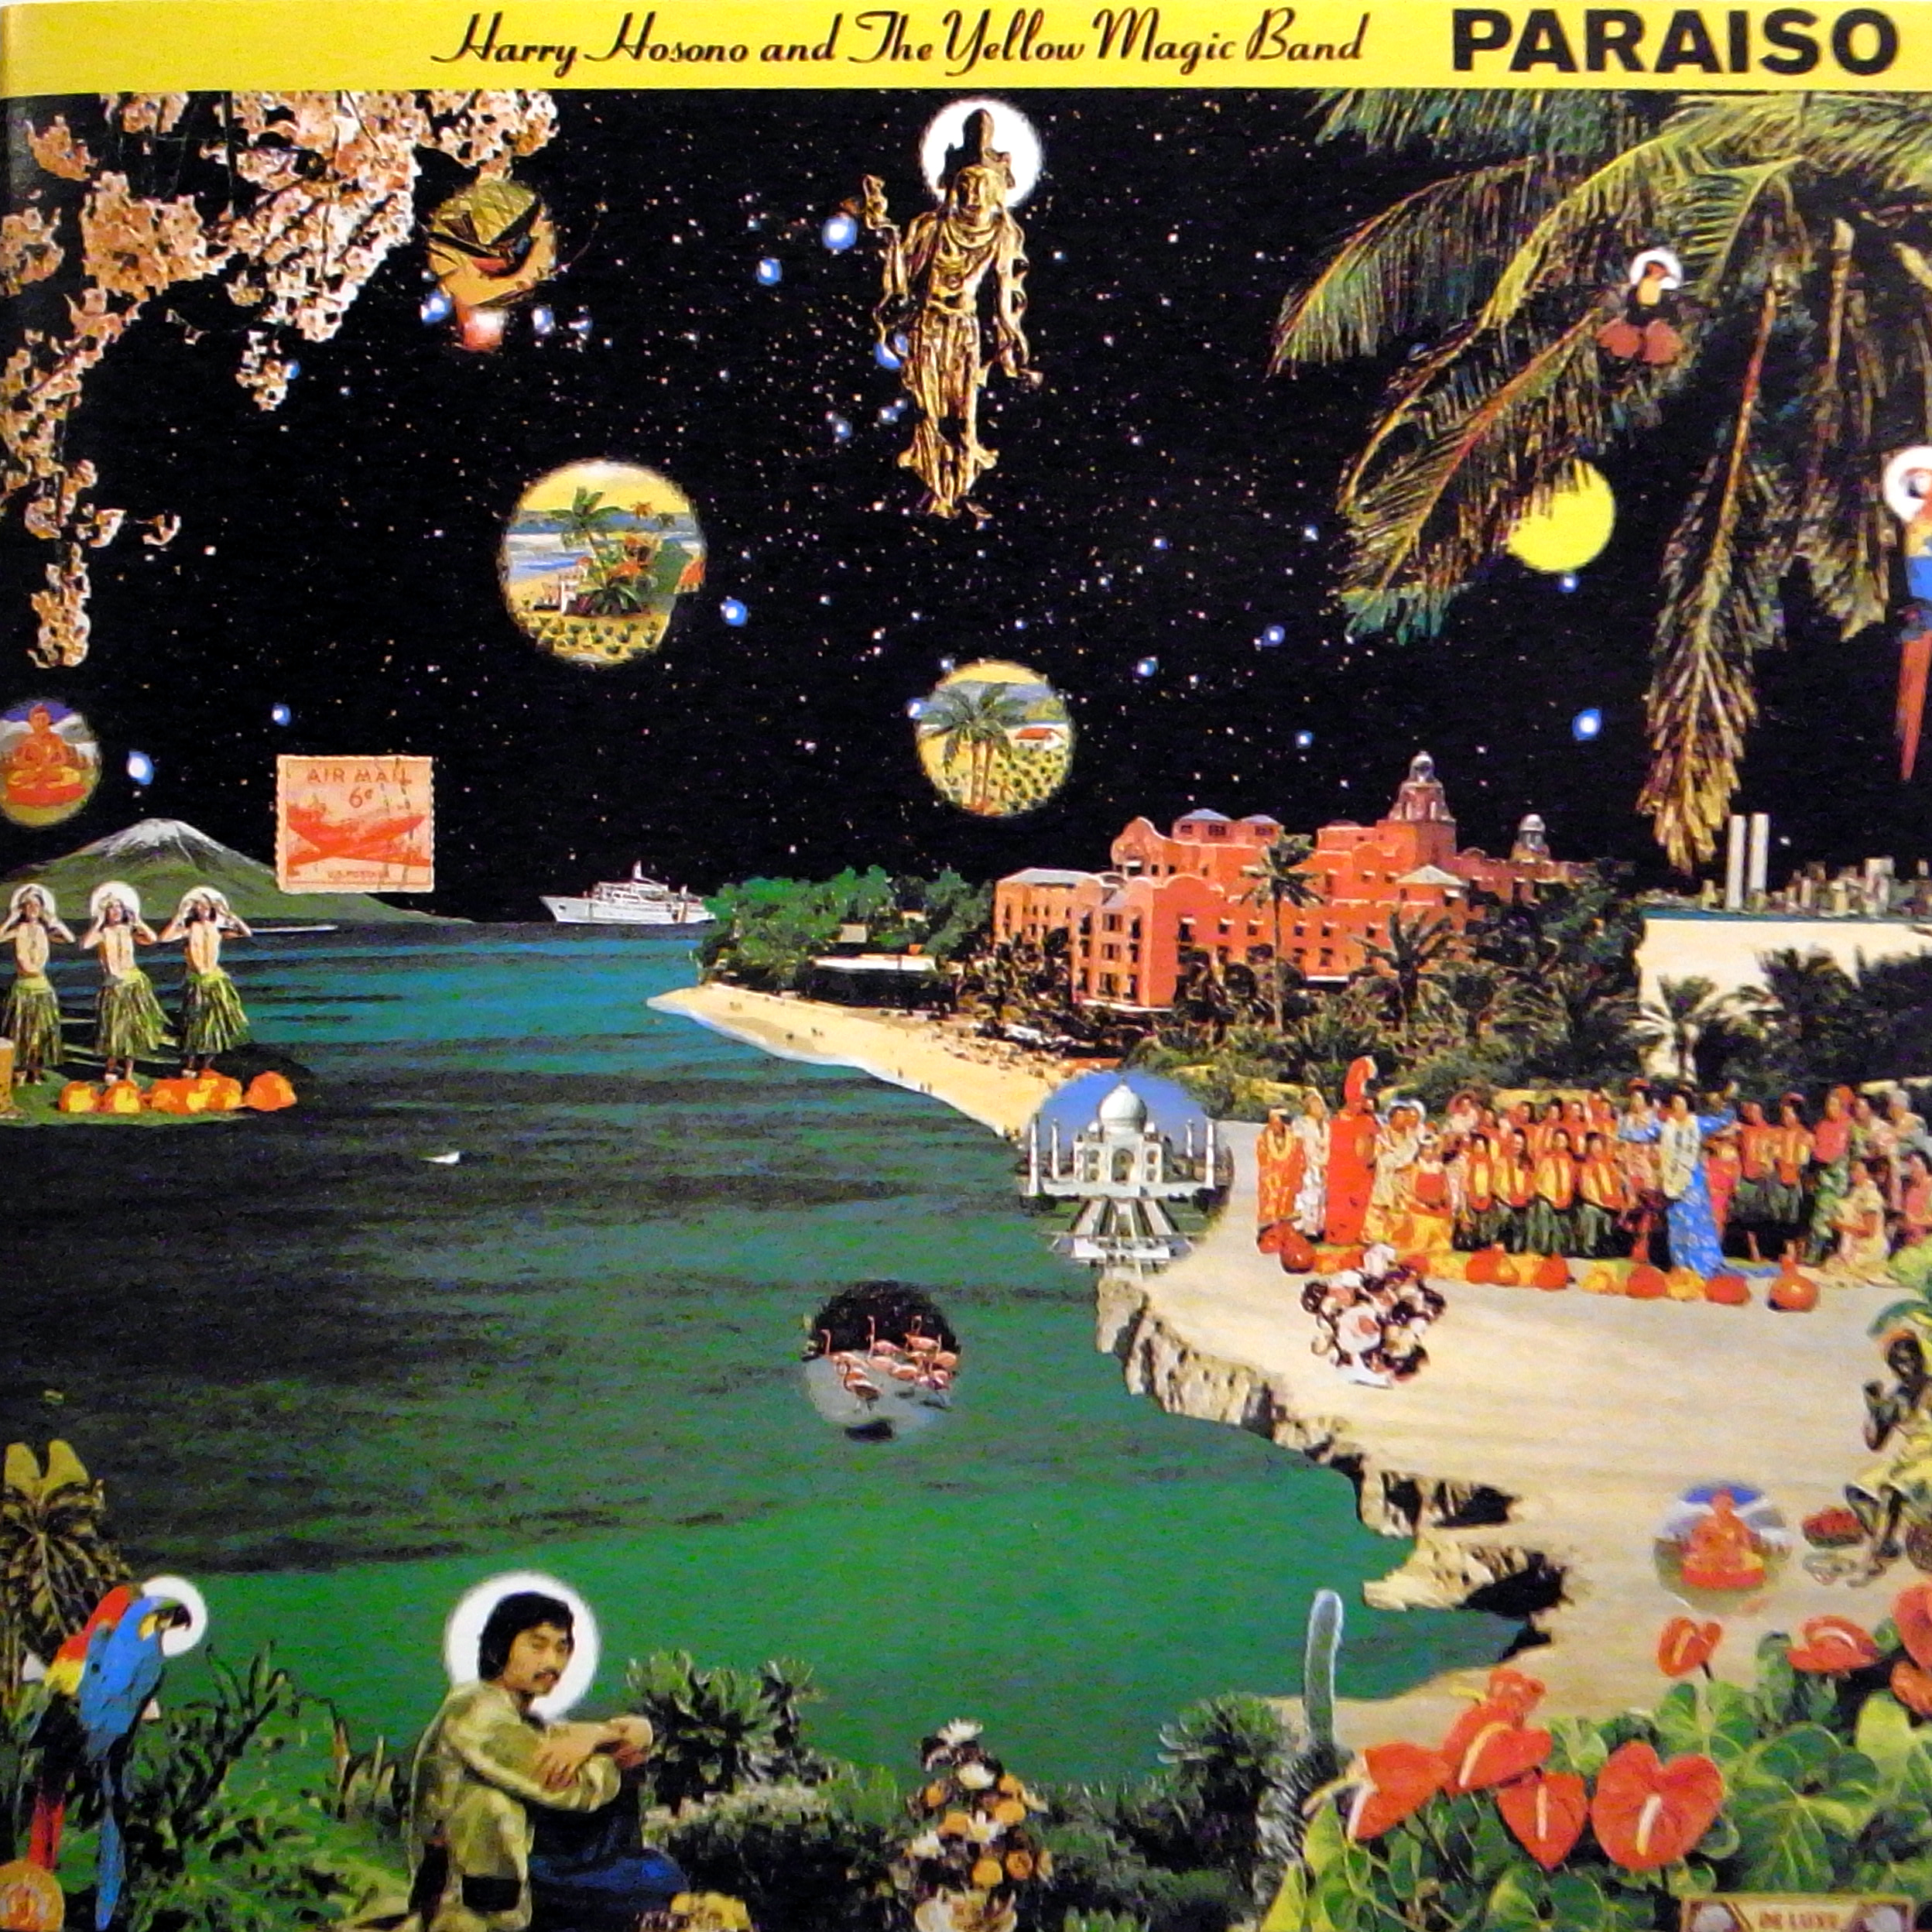 HARRY HOSONO AND THE YELLOW MAGIC BAND / PARAISO